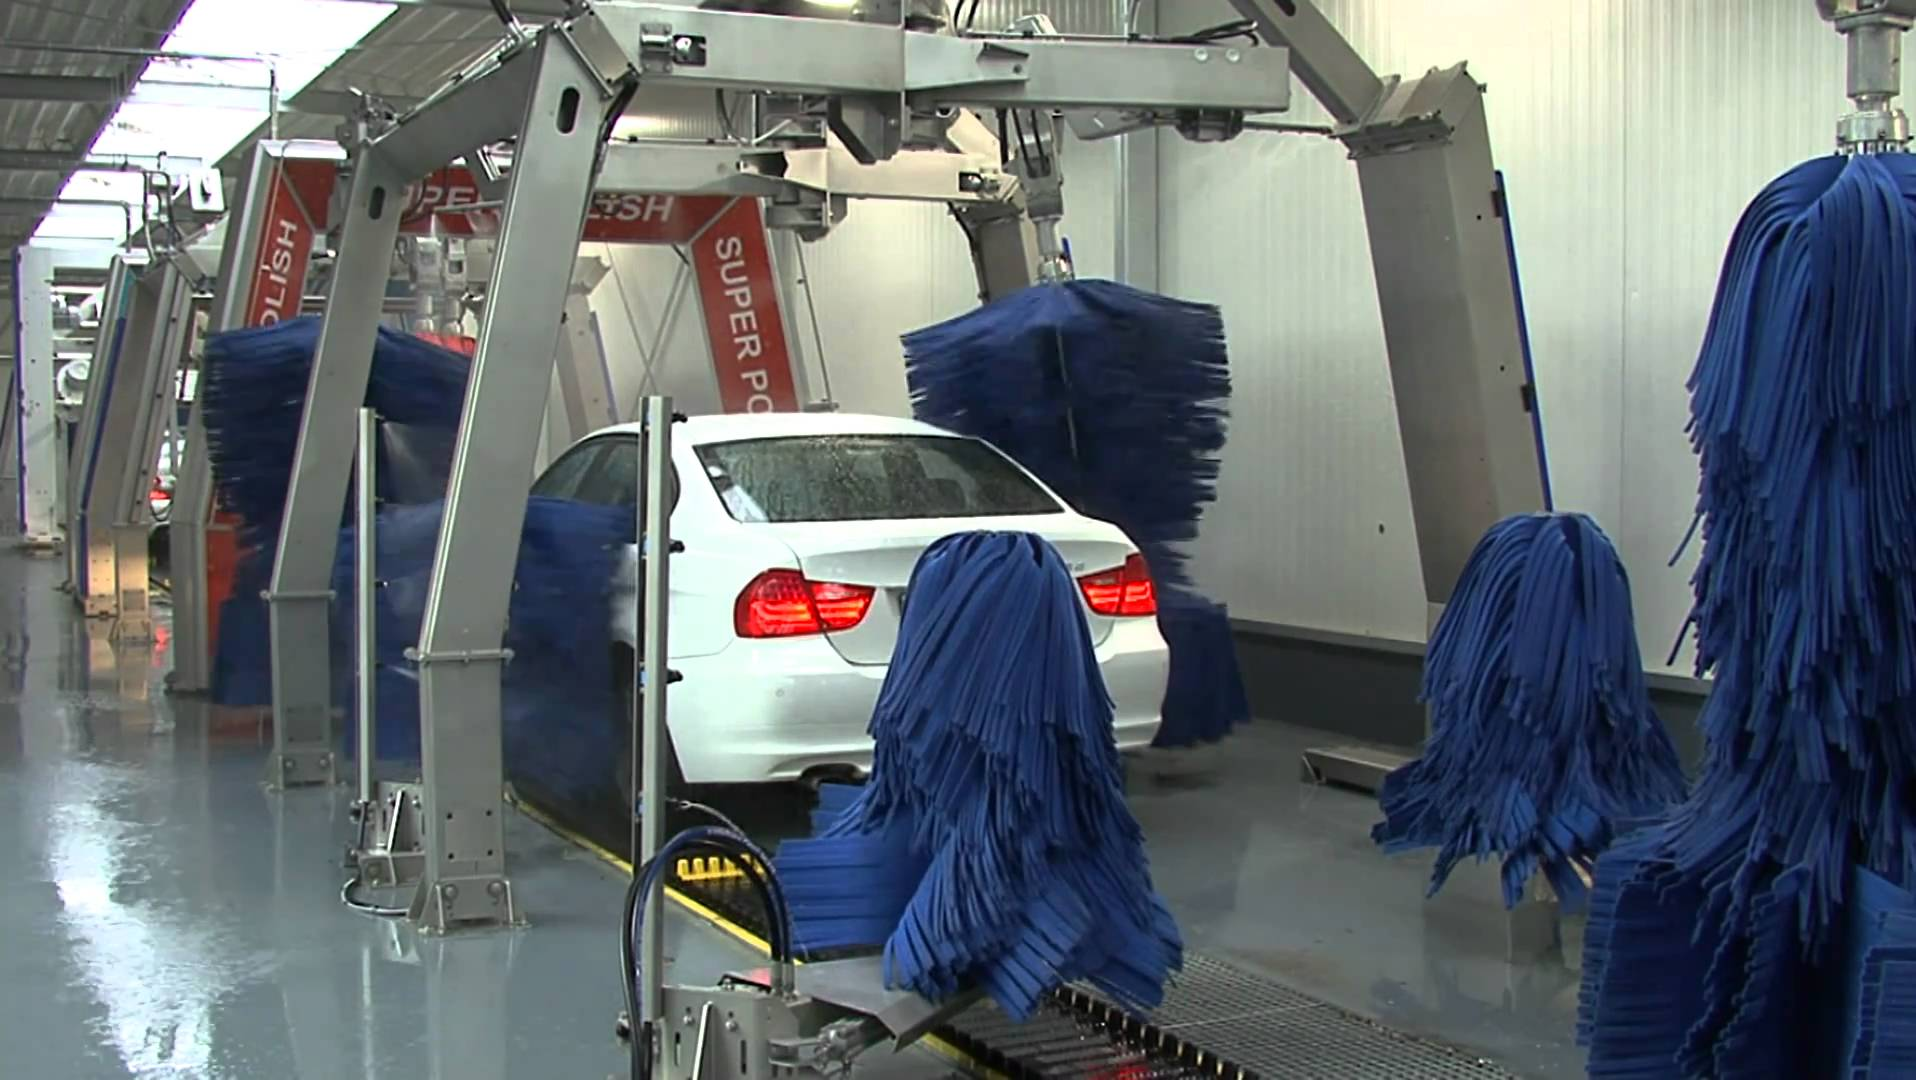 PicturesLogo/CAR TRUCK WASH PRODUCTS.jpg